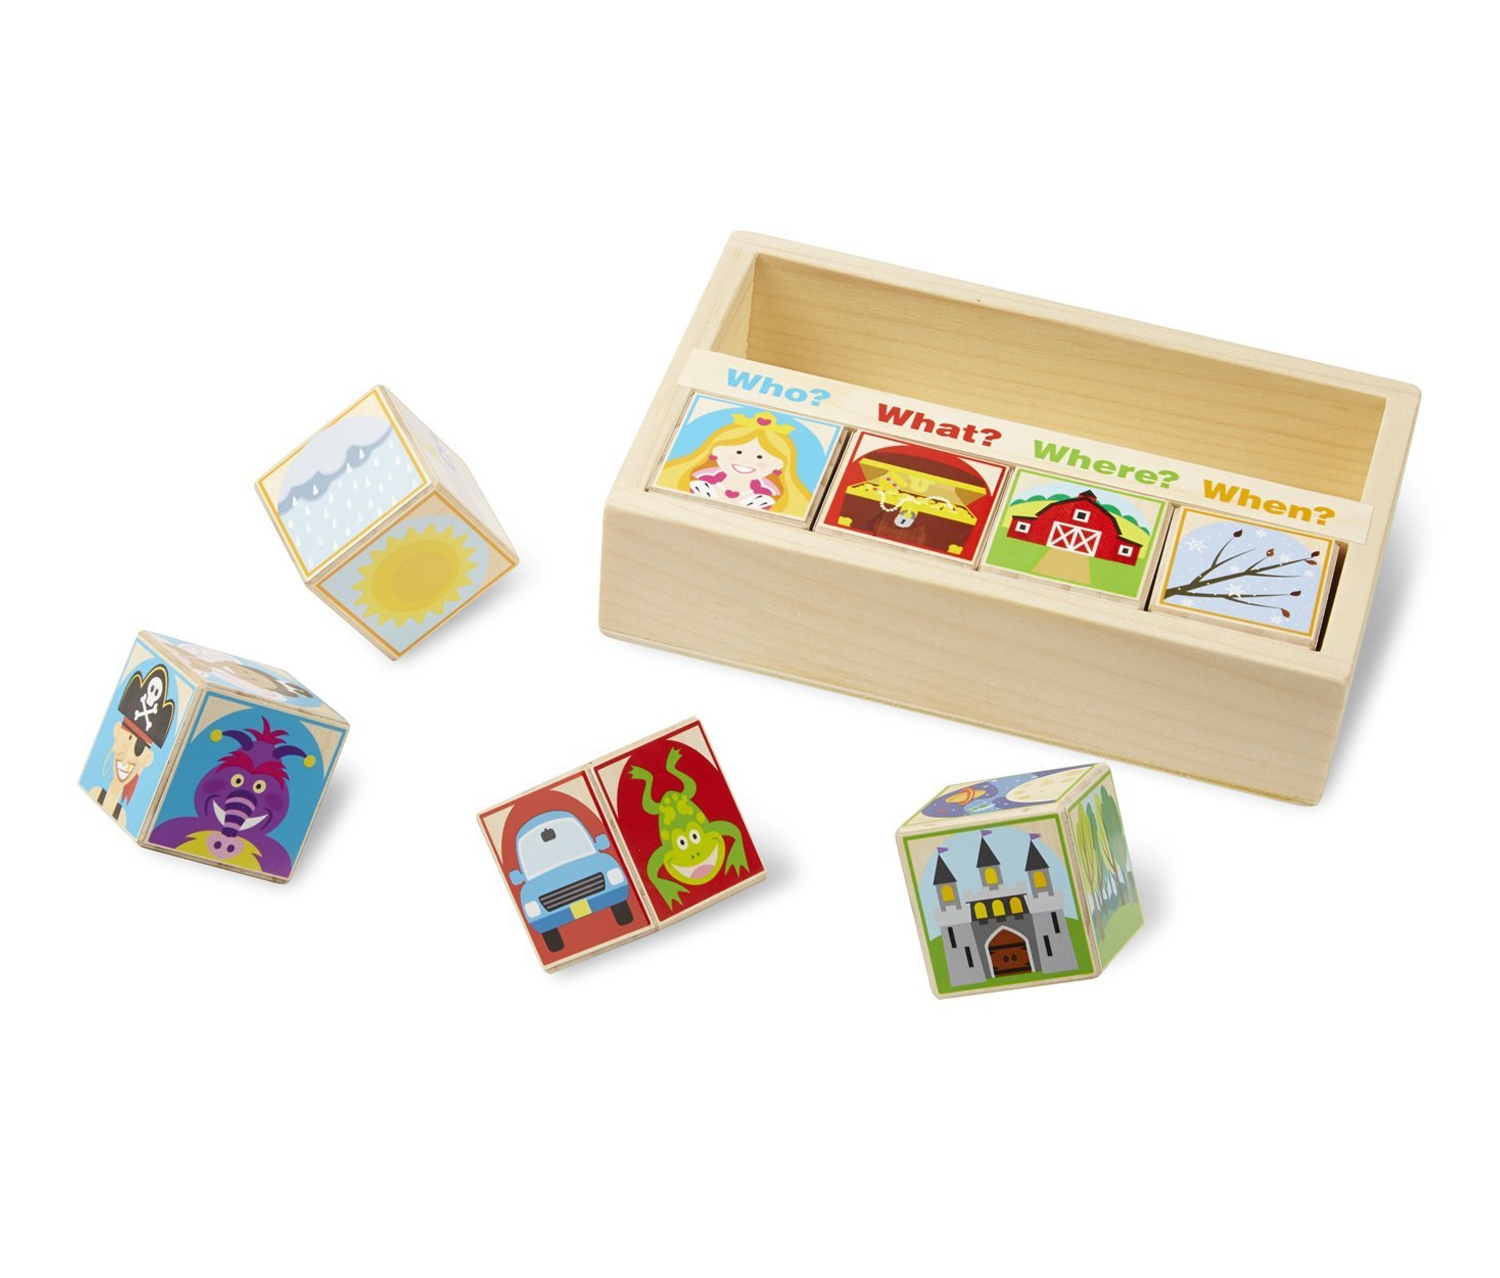 Educational Toys Brands : Wooden story blocks educational toy brands for less